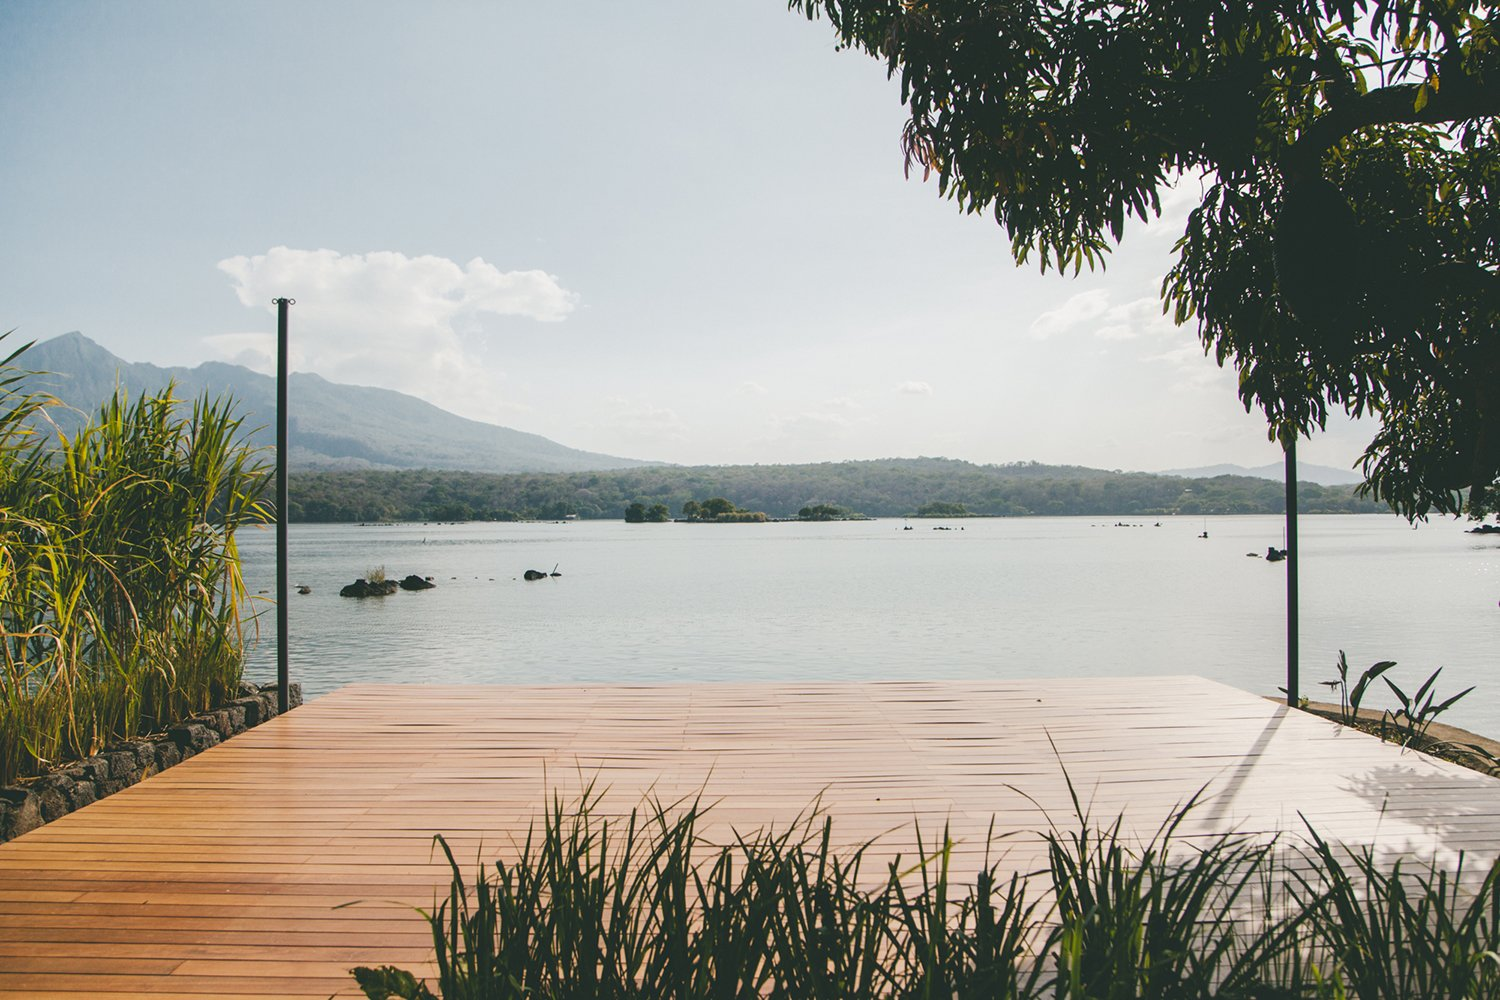 Outdoor, Large Patio, Porch, Deck, Wood Patio, Porch, Deck, and Trees  Photo 12 of 12 in Isleta El Espino: A Three-Room Eco Hotel on Lake Nicaragua